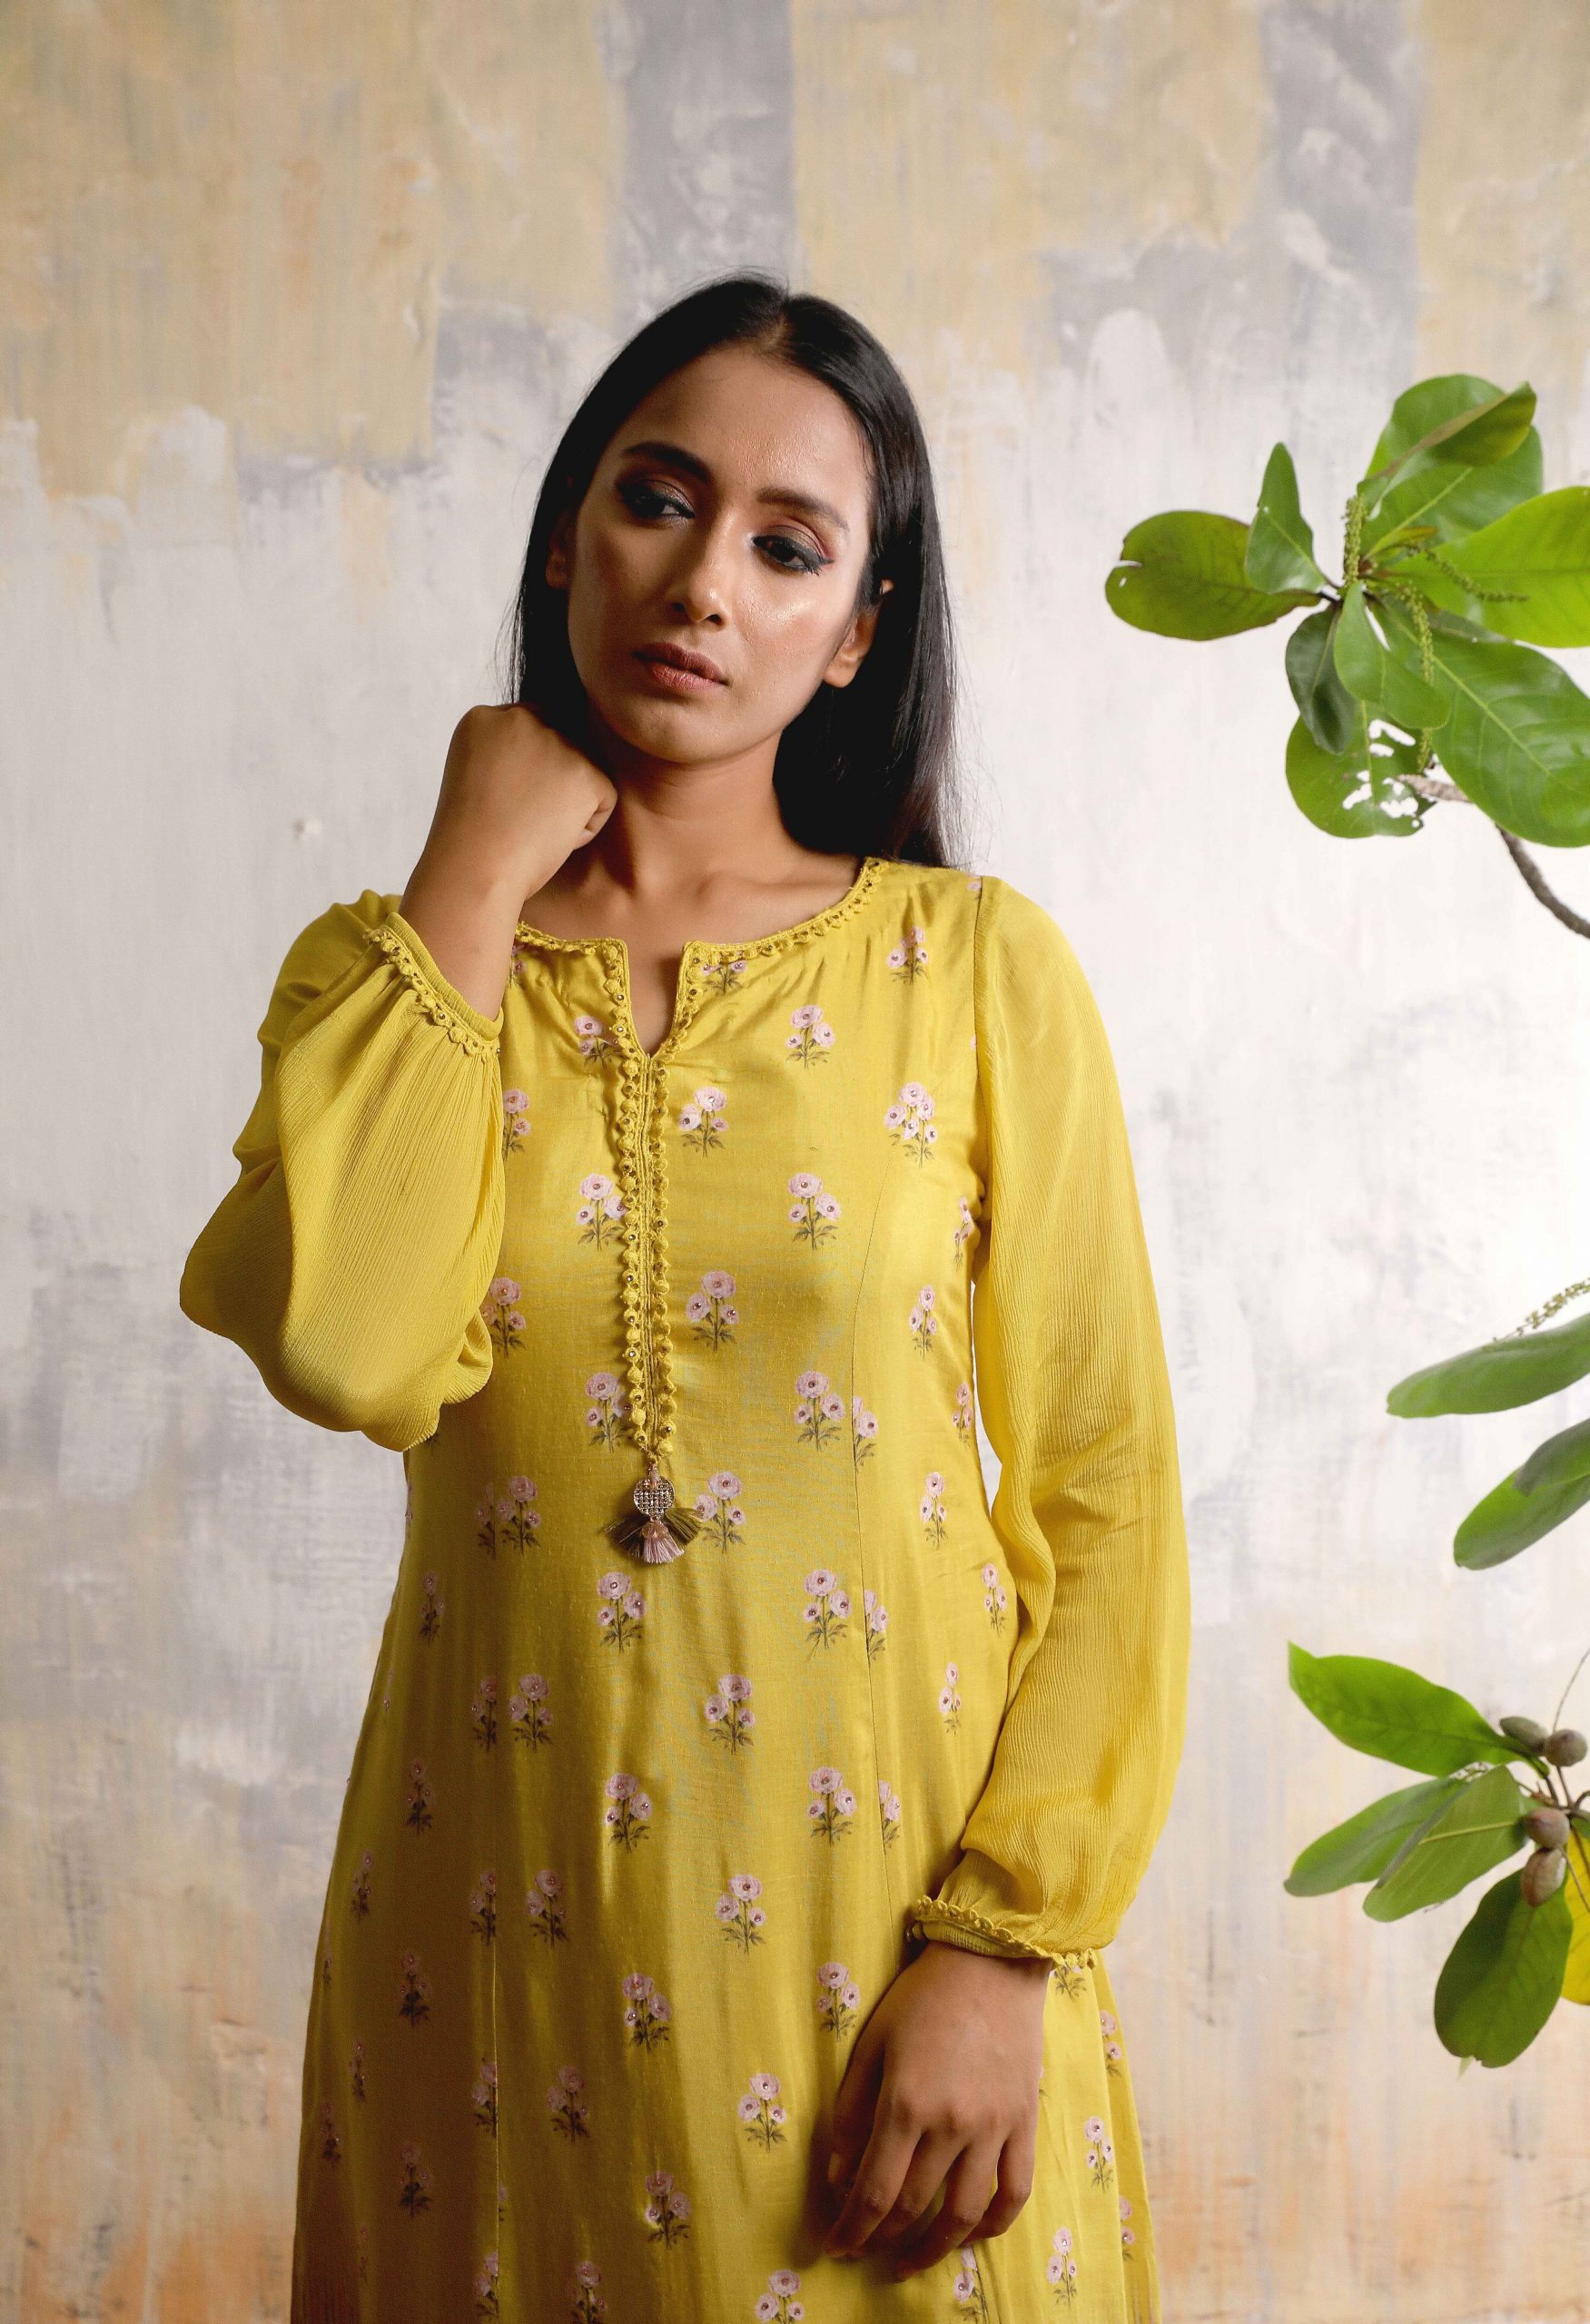 Mustard Yellow Cotton silk A-line long dress with small floral prints , beautiful neckline and Chiffon Balloon sleeves